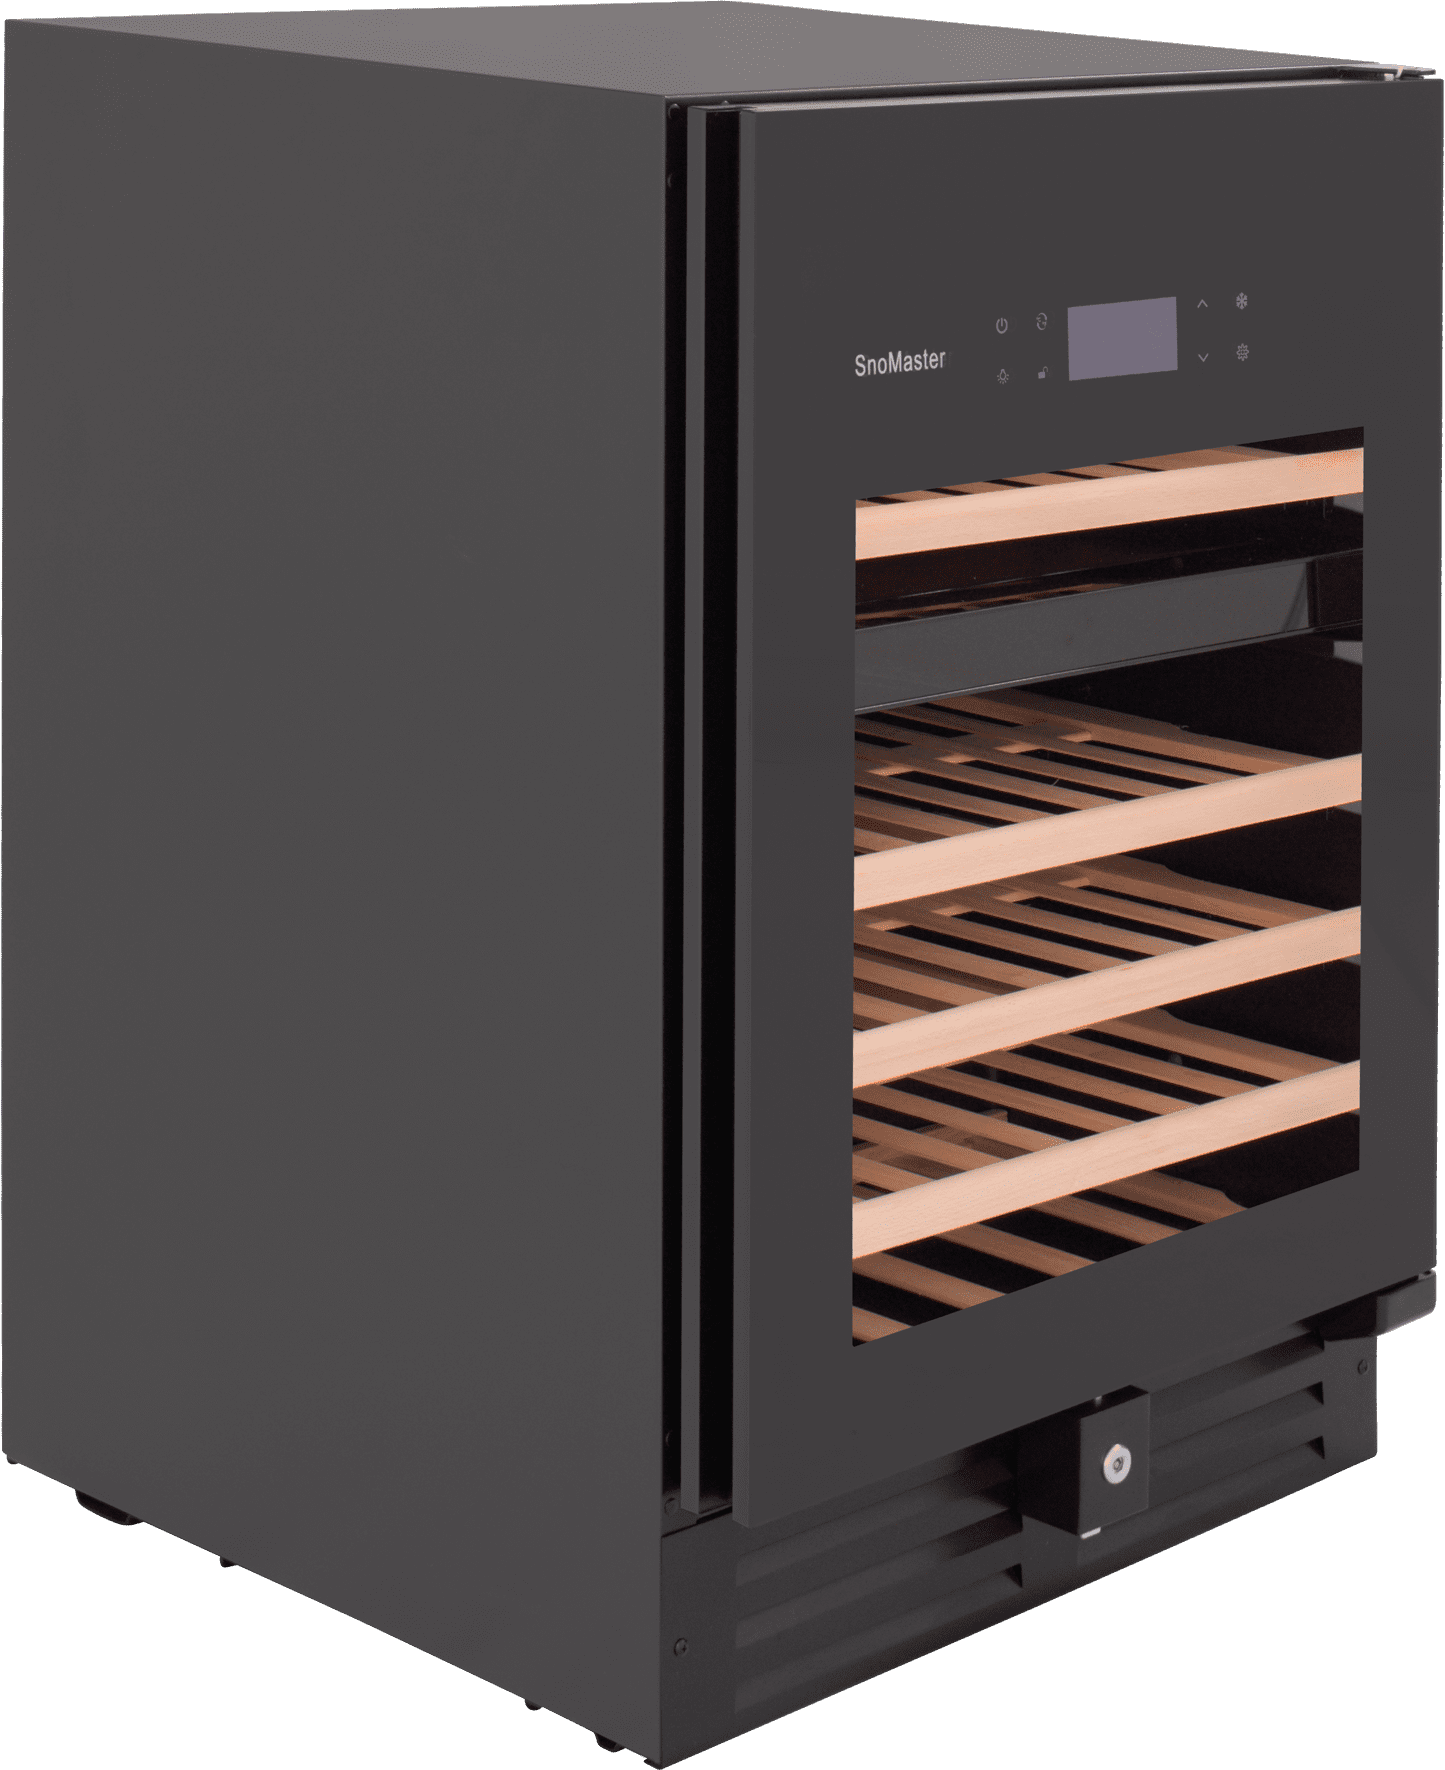 SnoMaster Ultra Quiet 46 Bottle Dual Zone Wine Chiller with Digital Temperature Right View